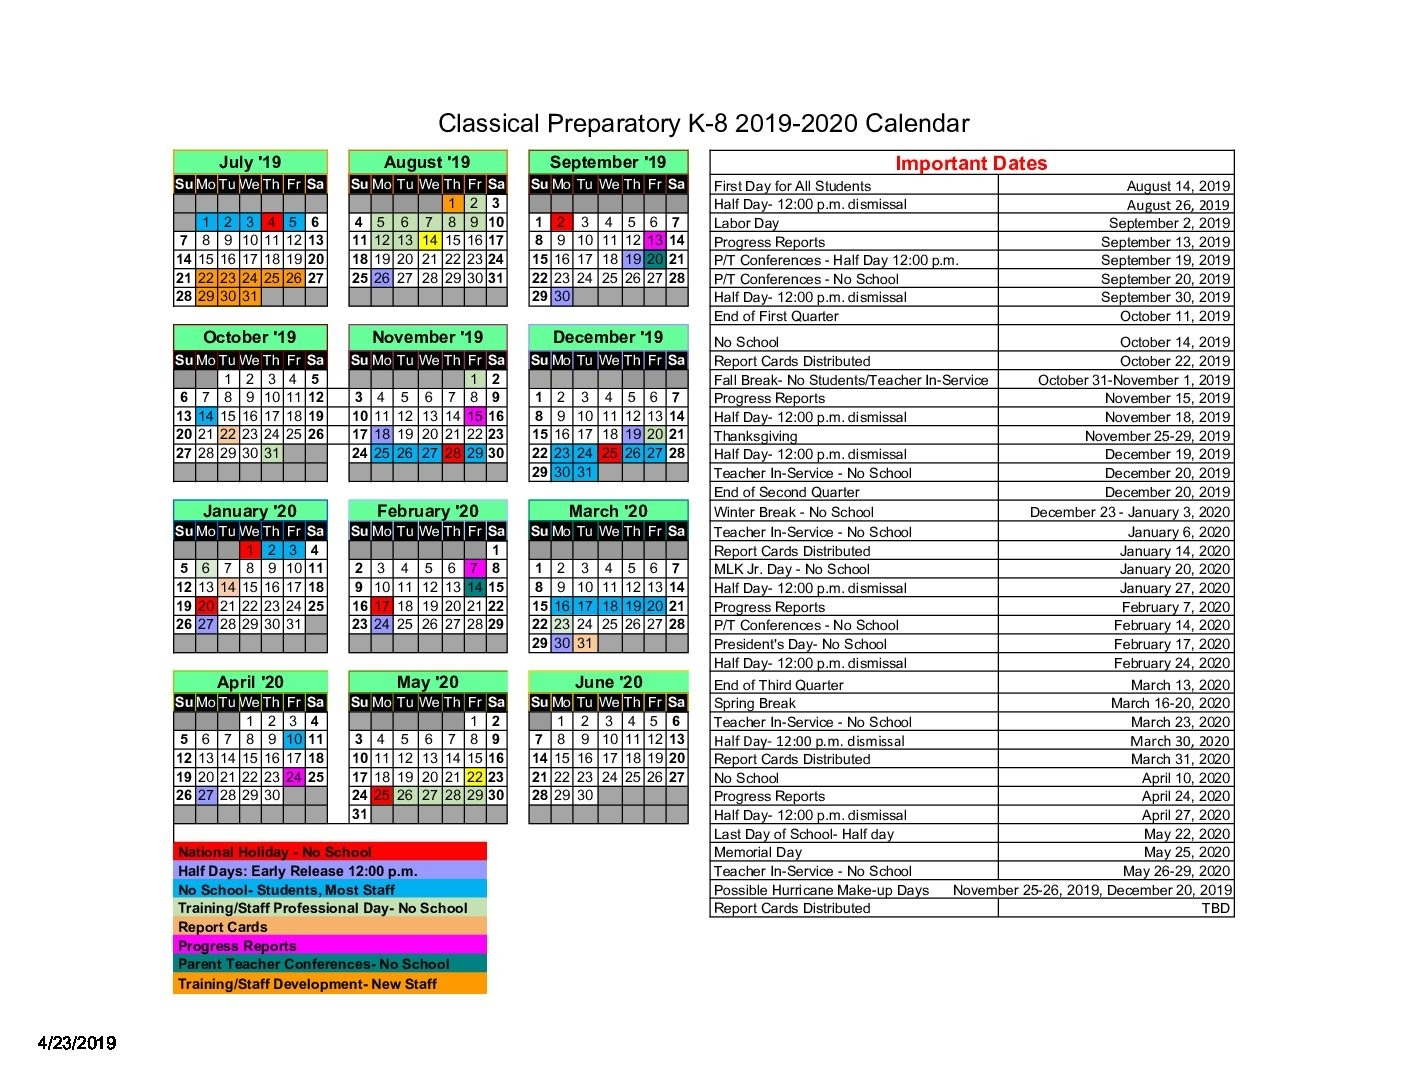 Academic Calendar 2019-2020 – Classical Preparatory School